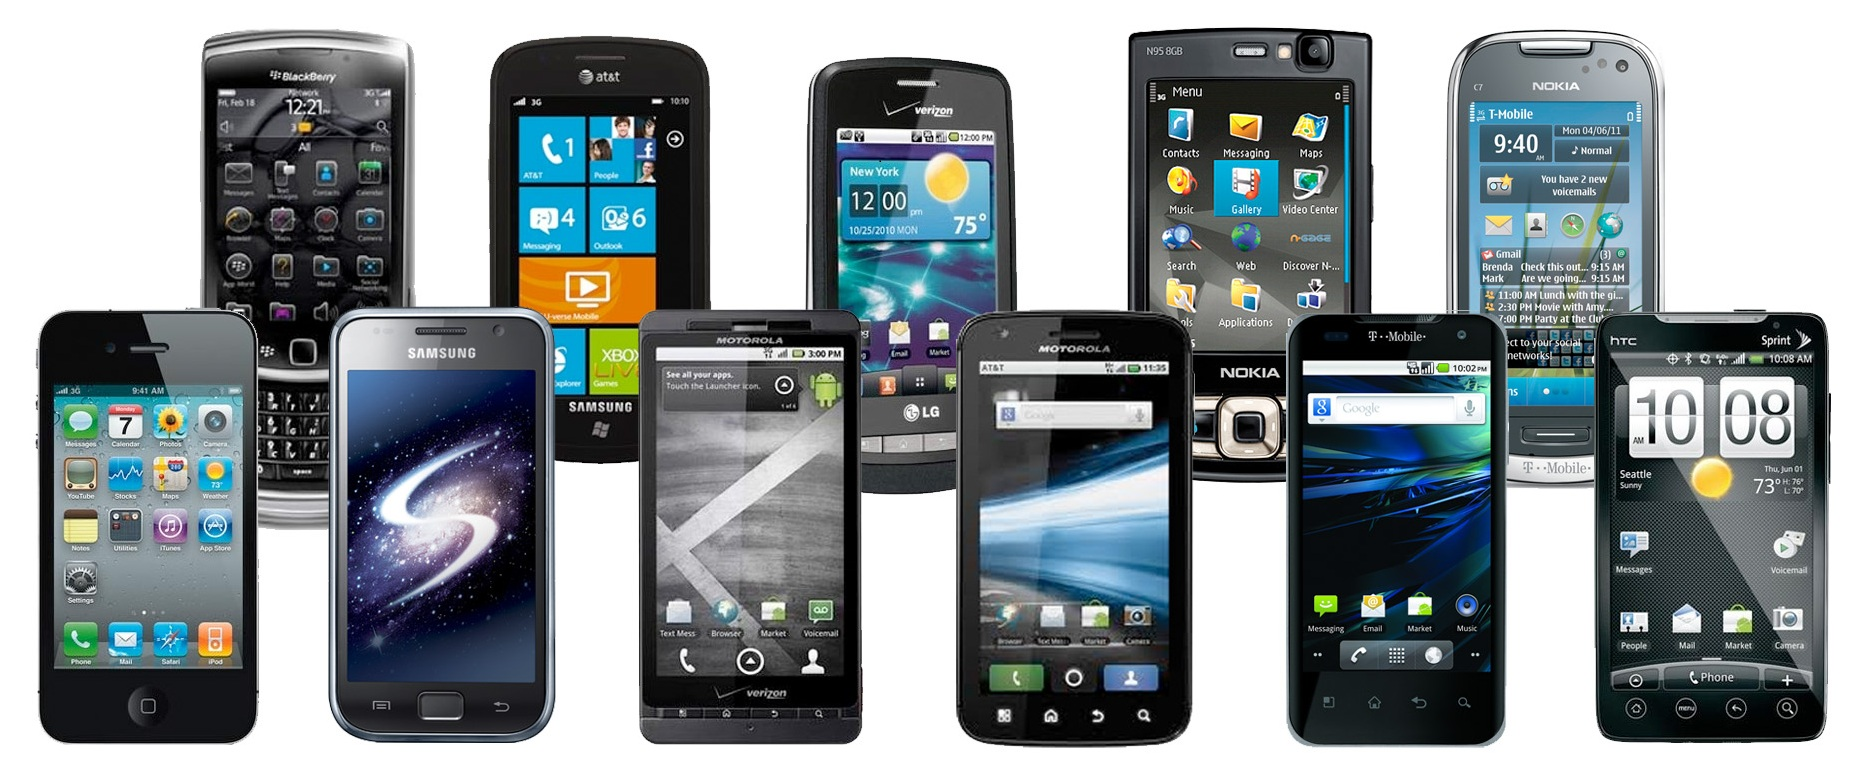 76.6 percent of mobile users in America now own a smartphone